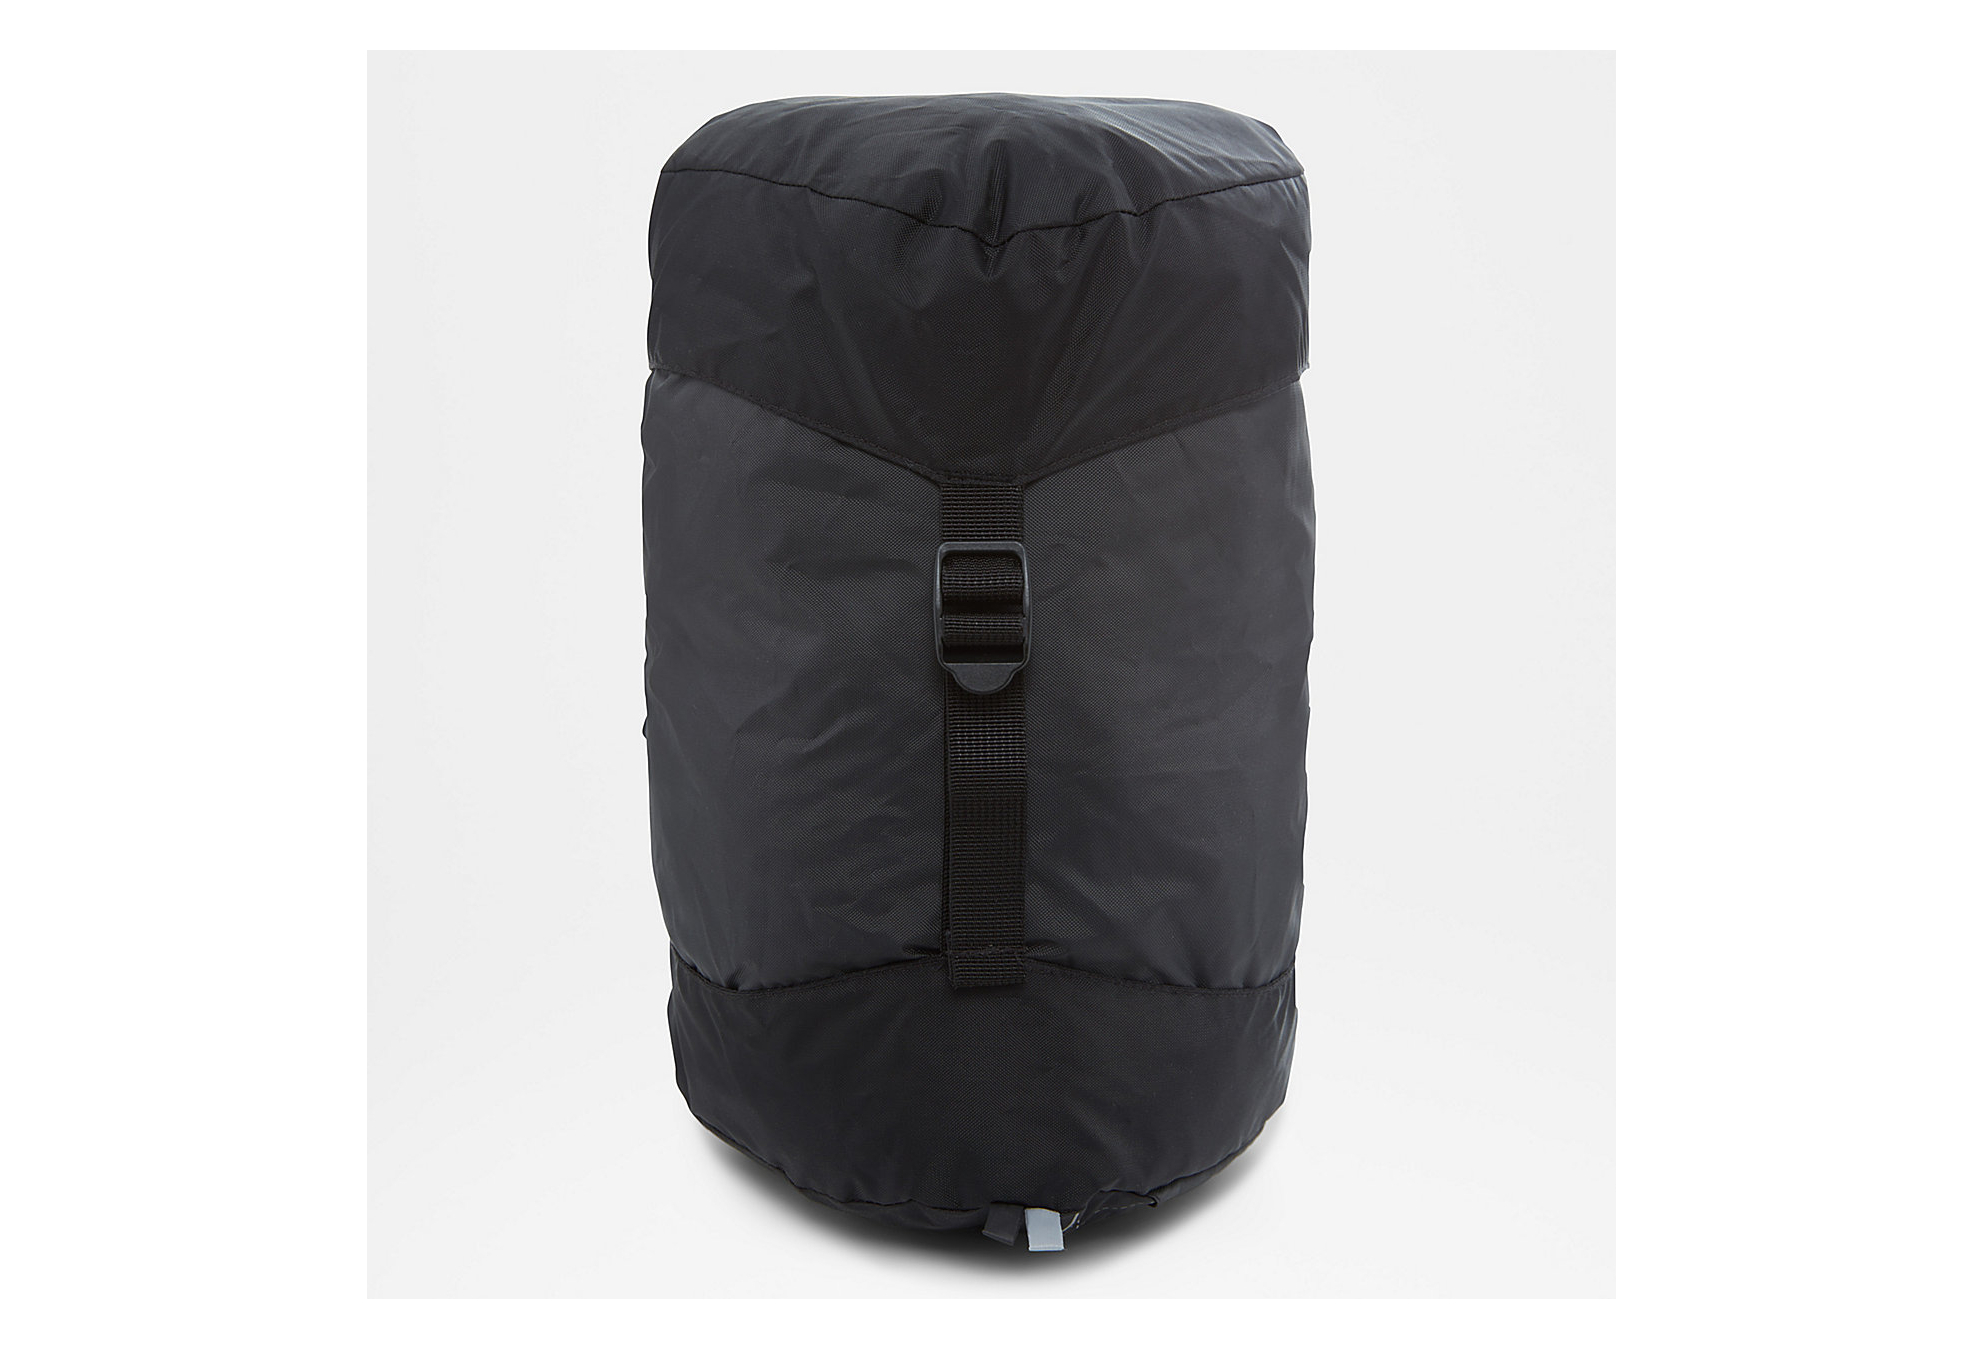 The North Face Sac De Couchage Gold Kazoo Reg Gauche